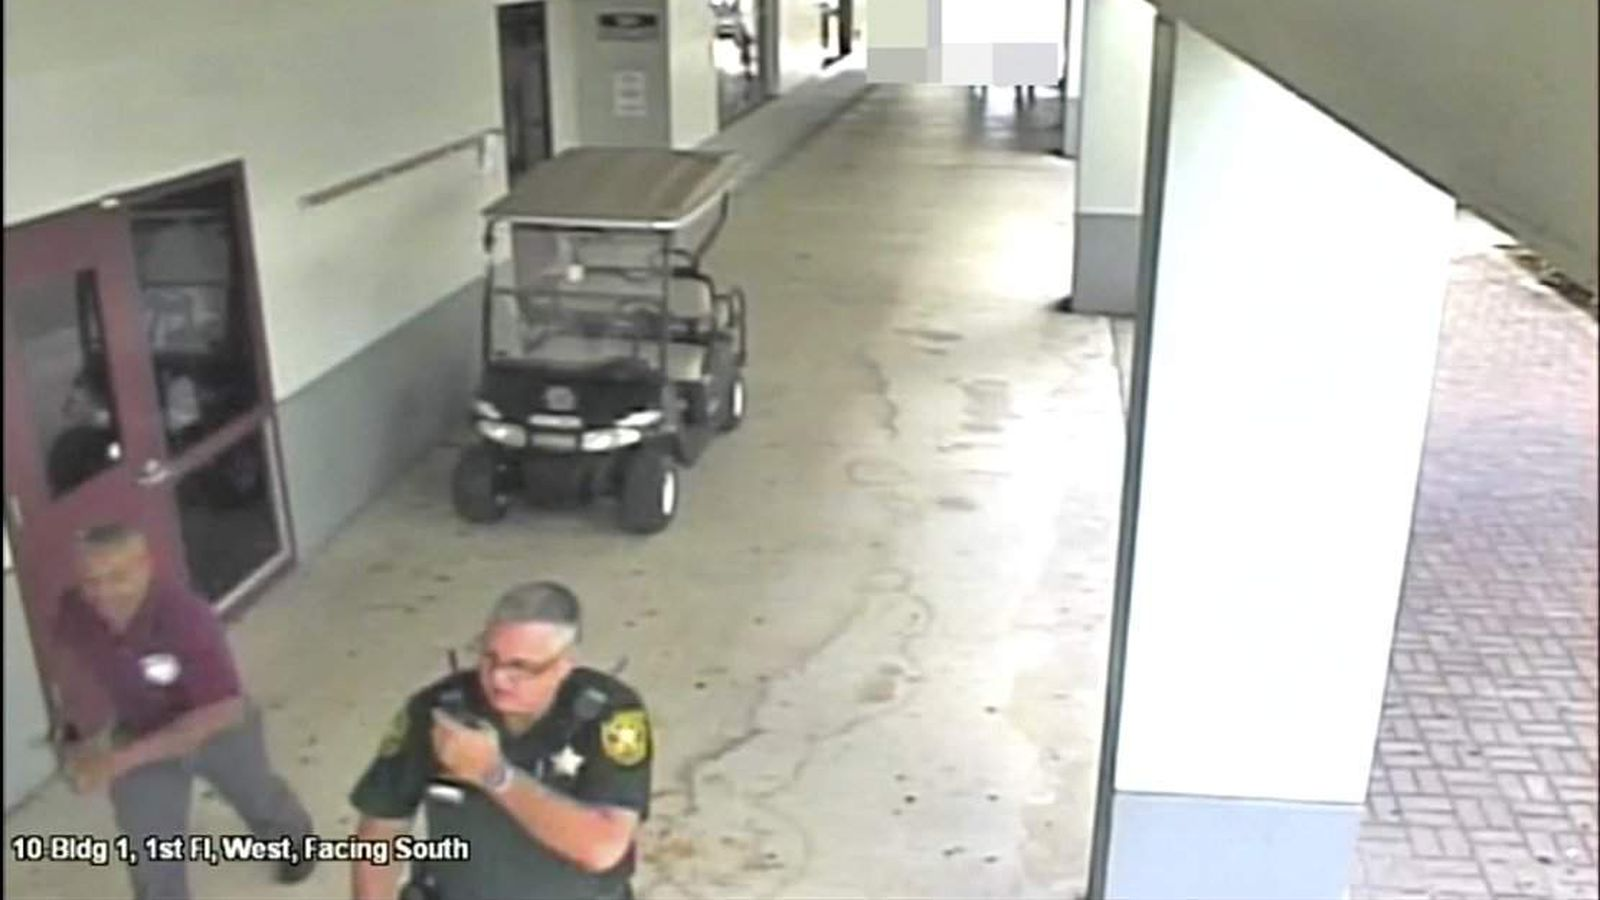 He retreated and ran:' New video spotlights former Parkland